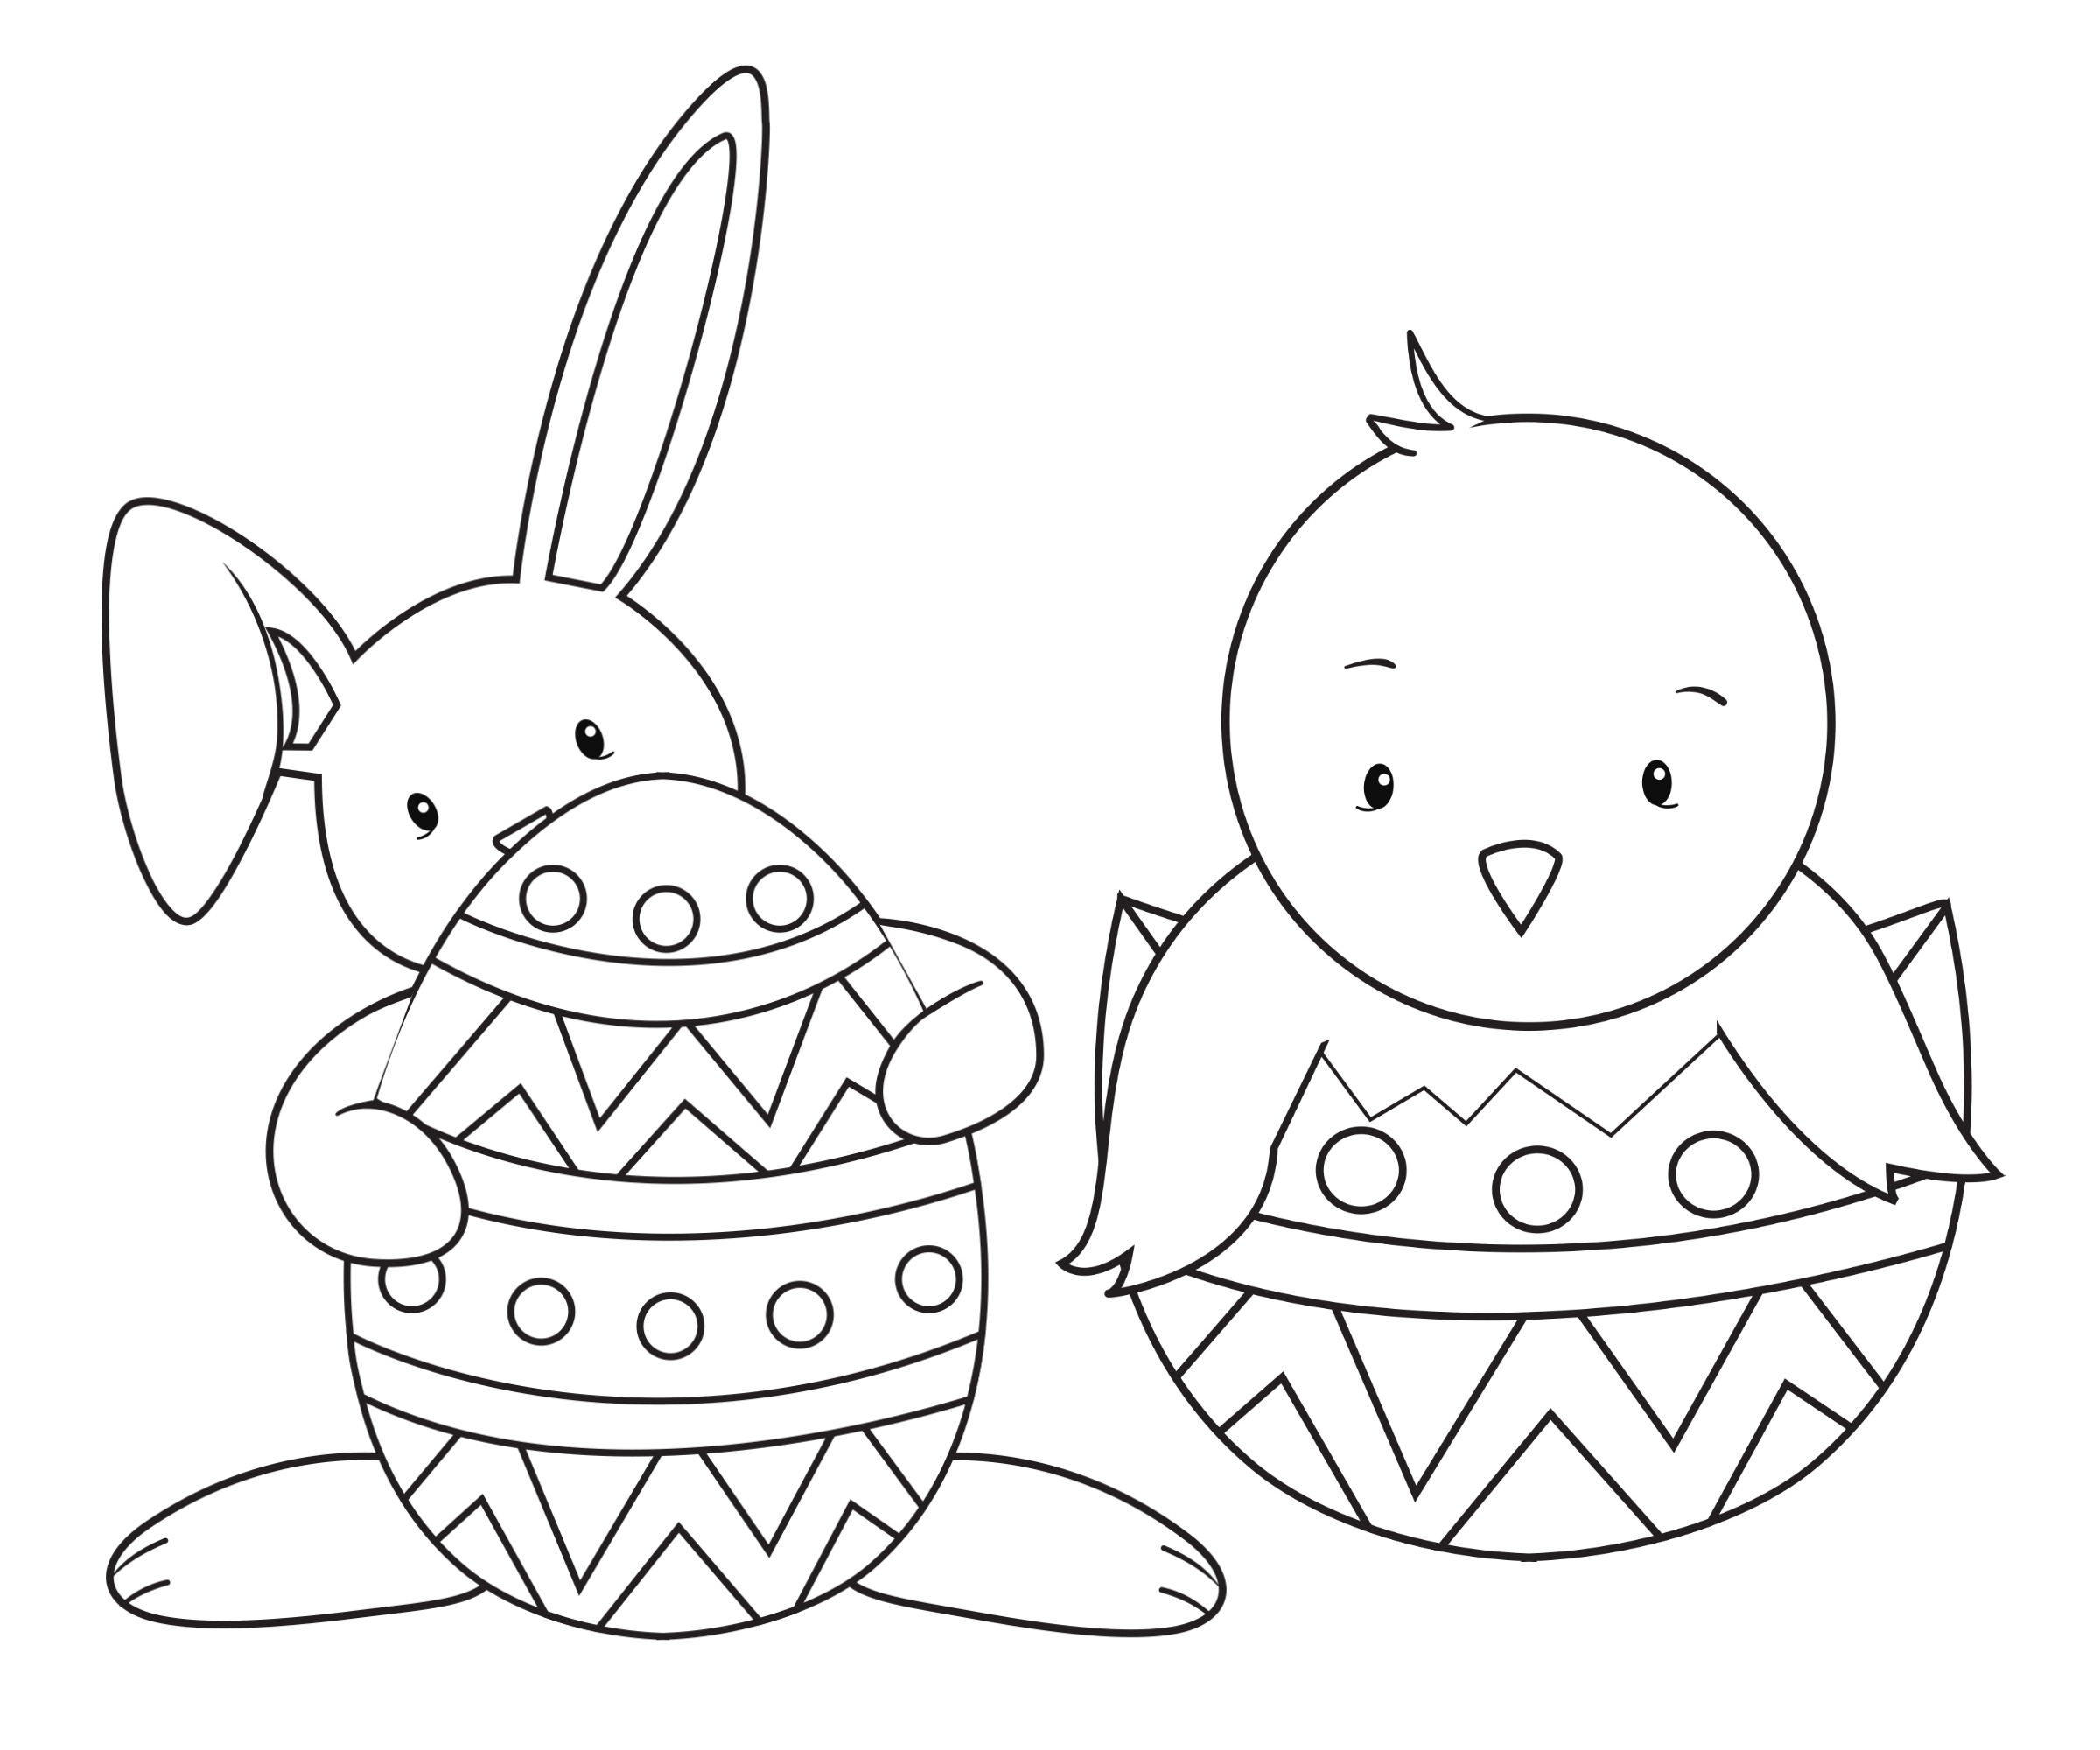 15 Easter Colouring In Pages - The Organised Housewife - Free Printable Easter Colouring Sheets